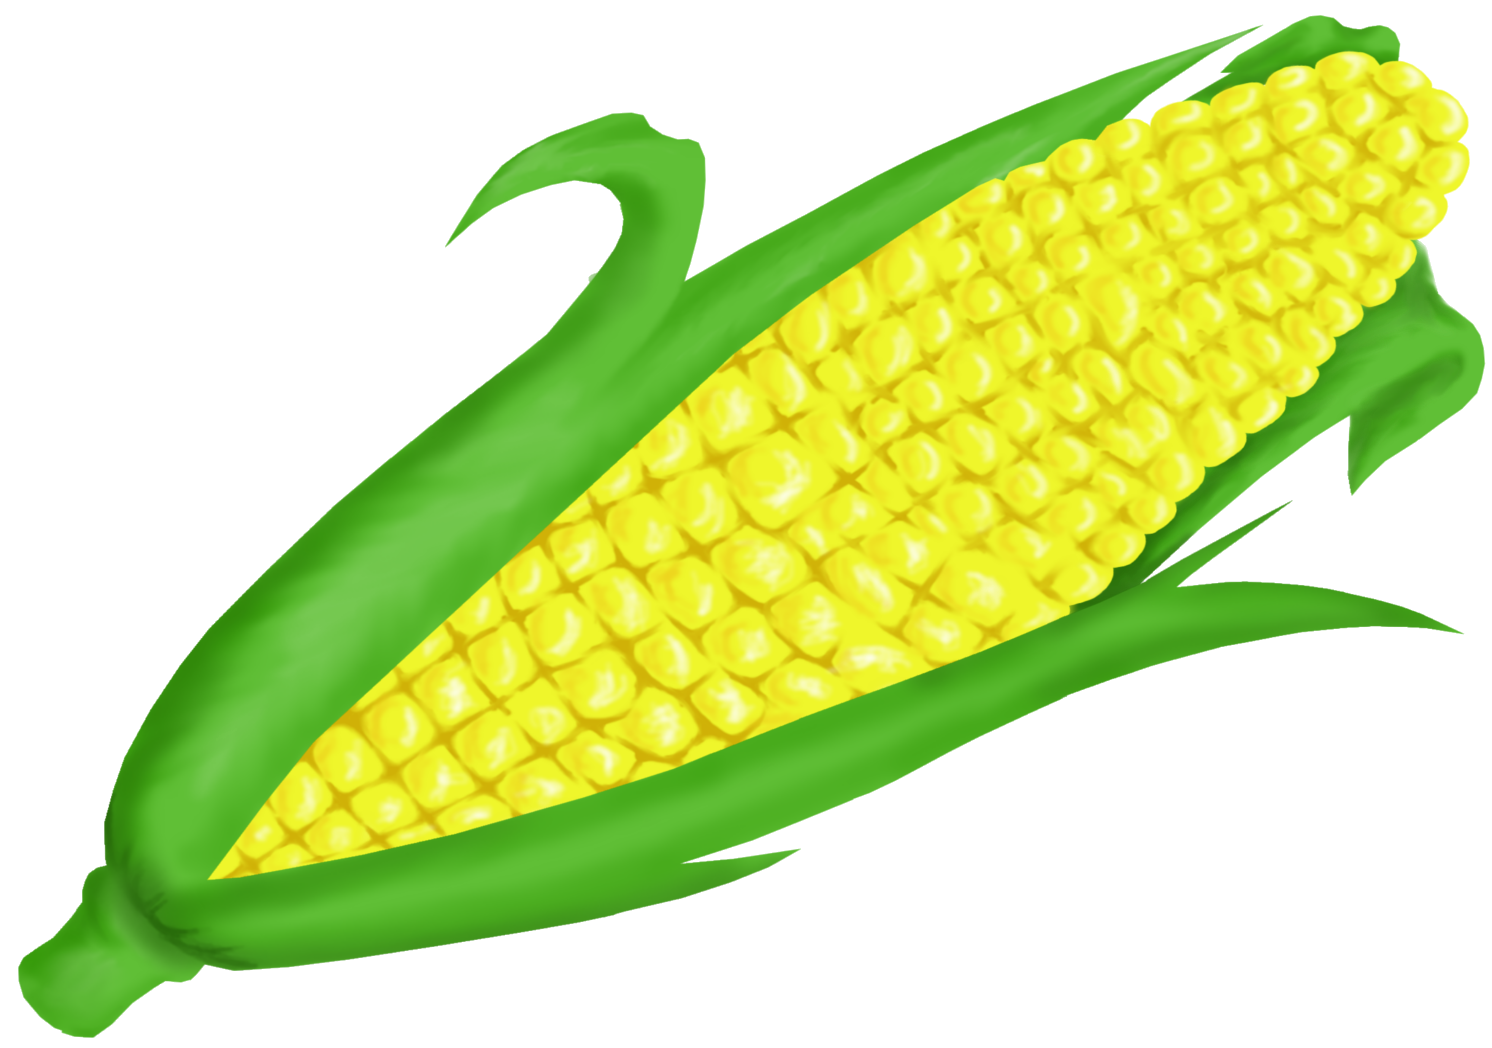 Free Maize Cliparts, Download Free Clip Art, Free Clip Art.